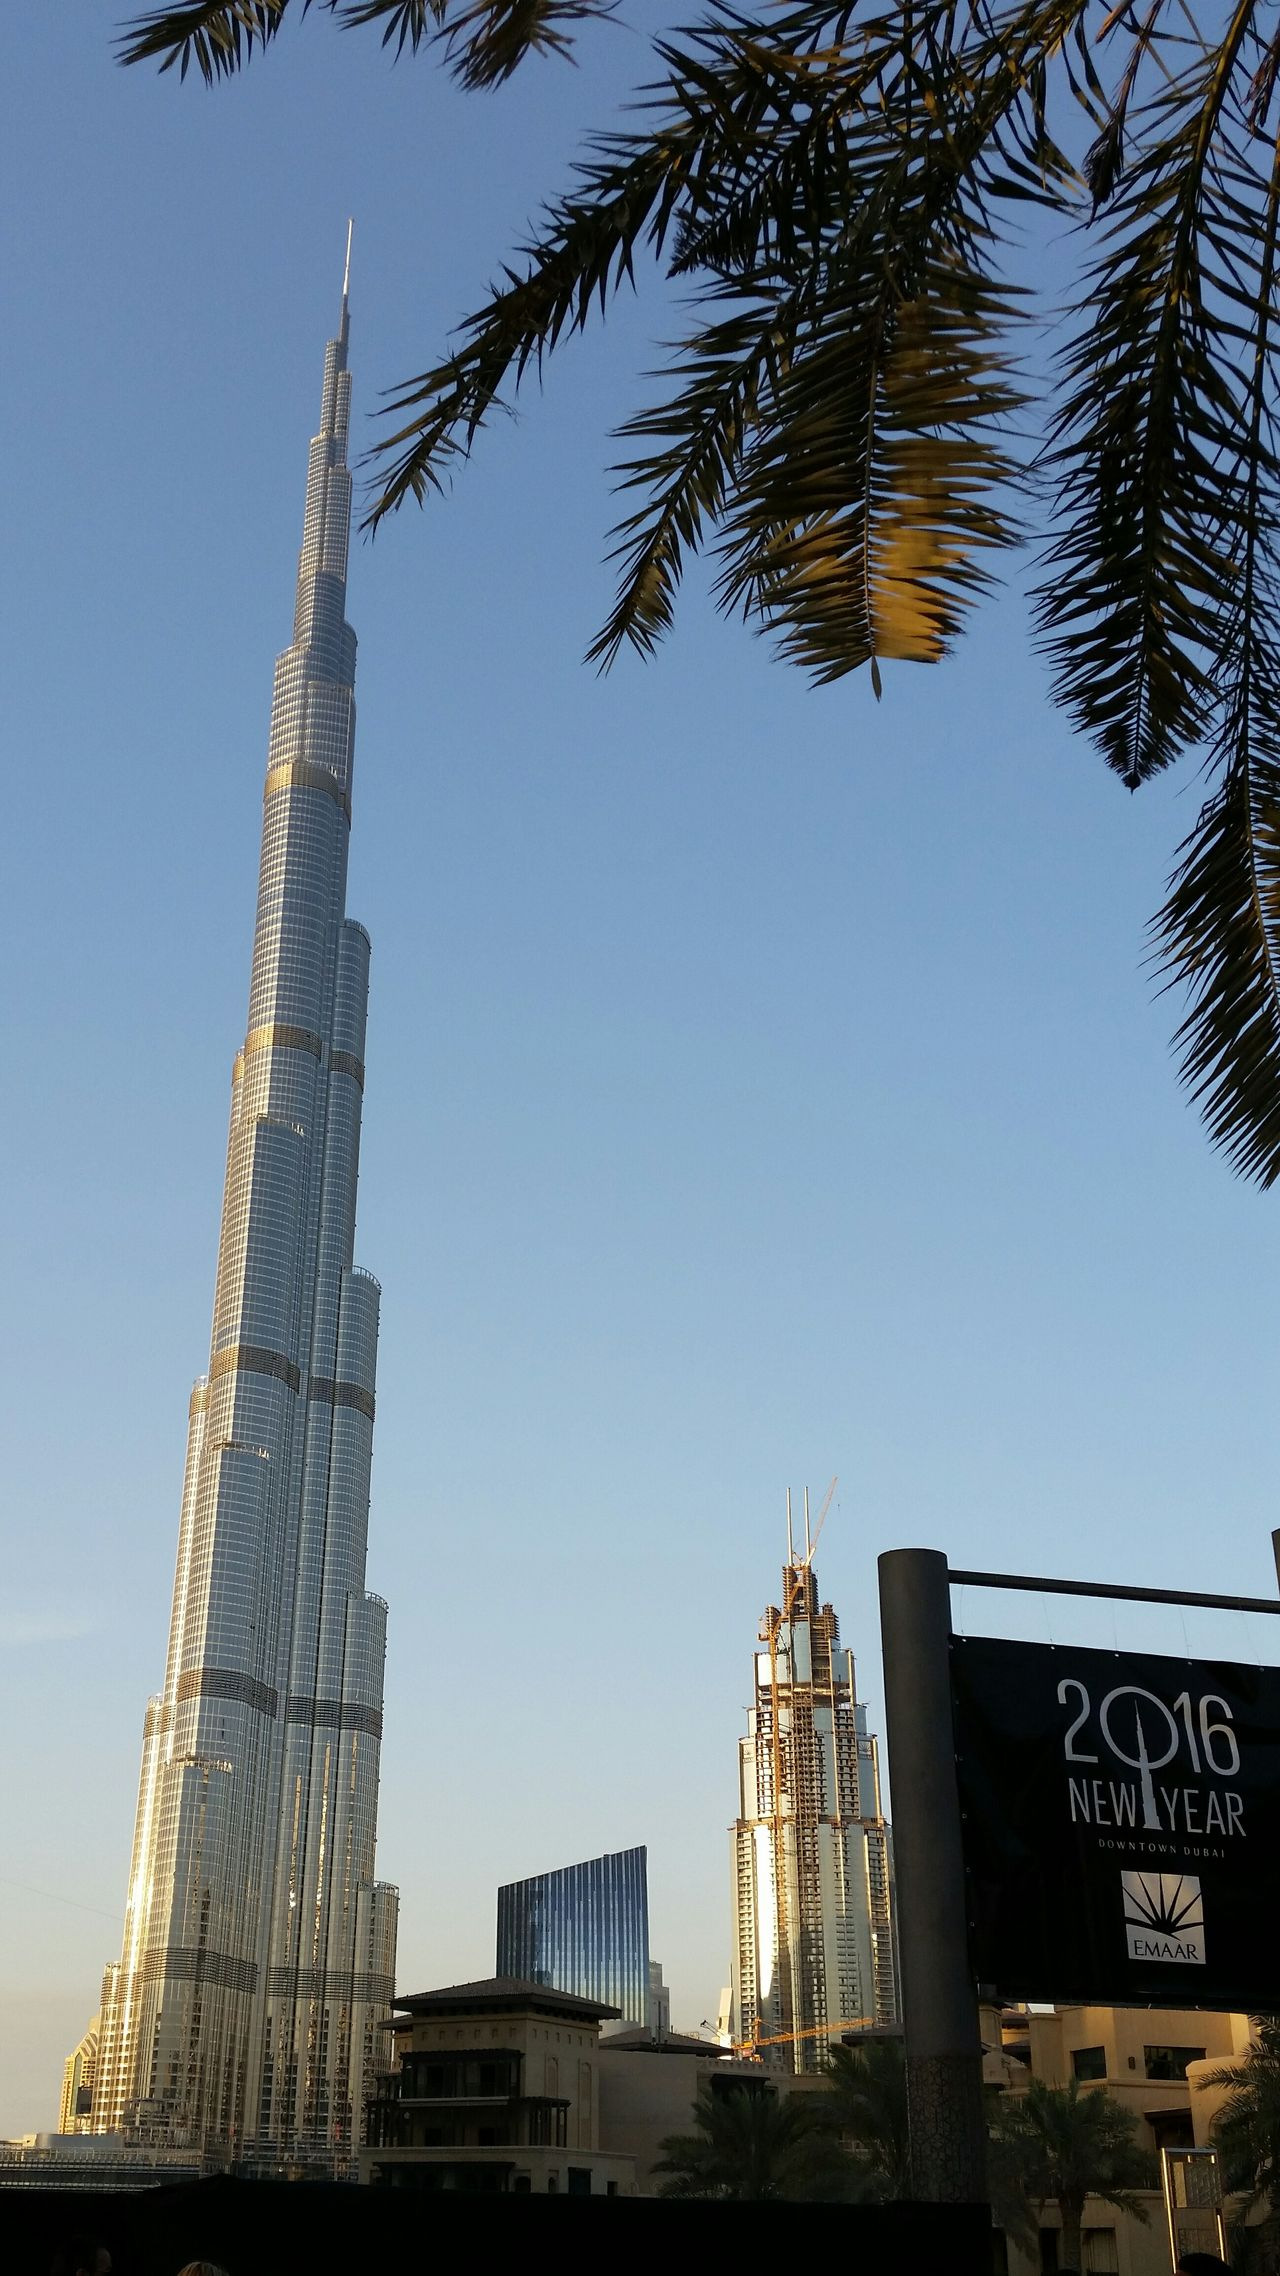 Burj Khalifa New Year Is Coming Dubai Palm Tree Streetphotography Street Photography Streetview Festivity New Year Celebration Skyscraper